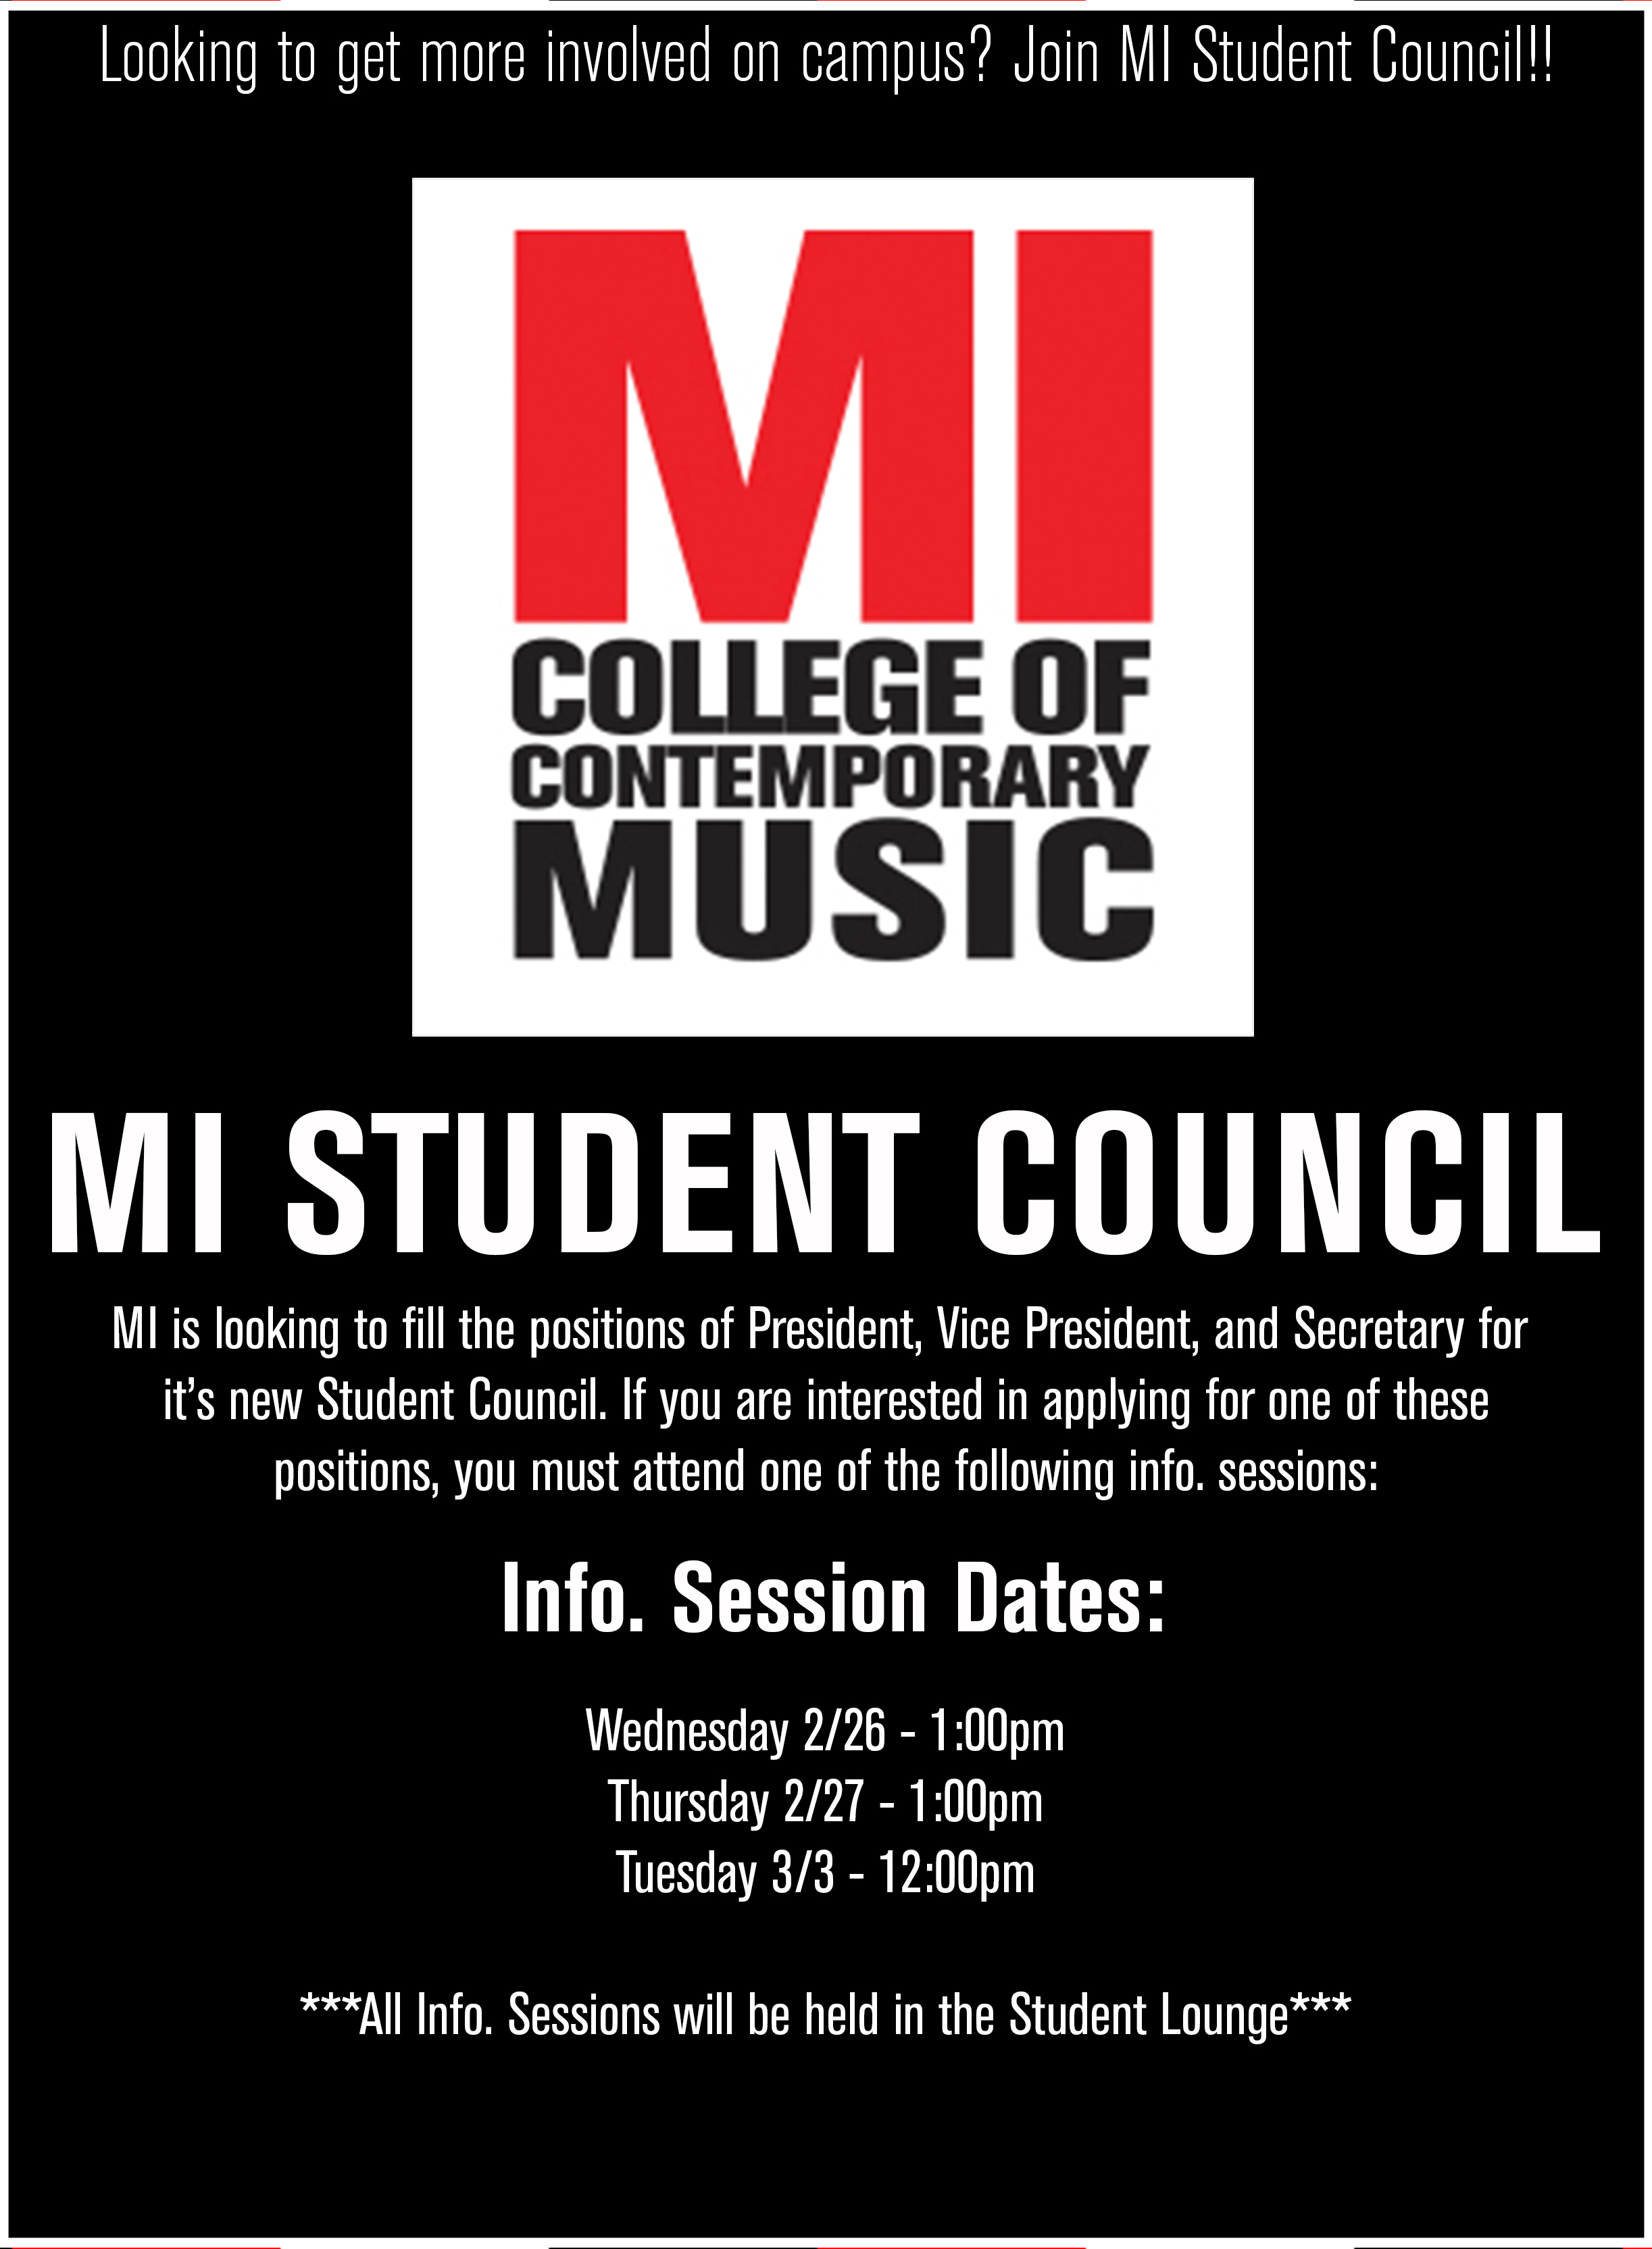 MI STUDENT COUNCIL INFO. SESSION